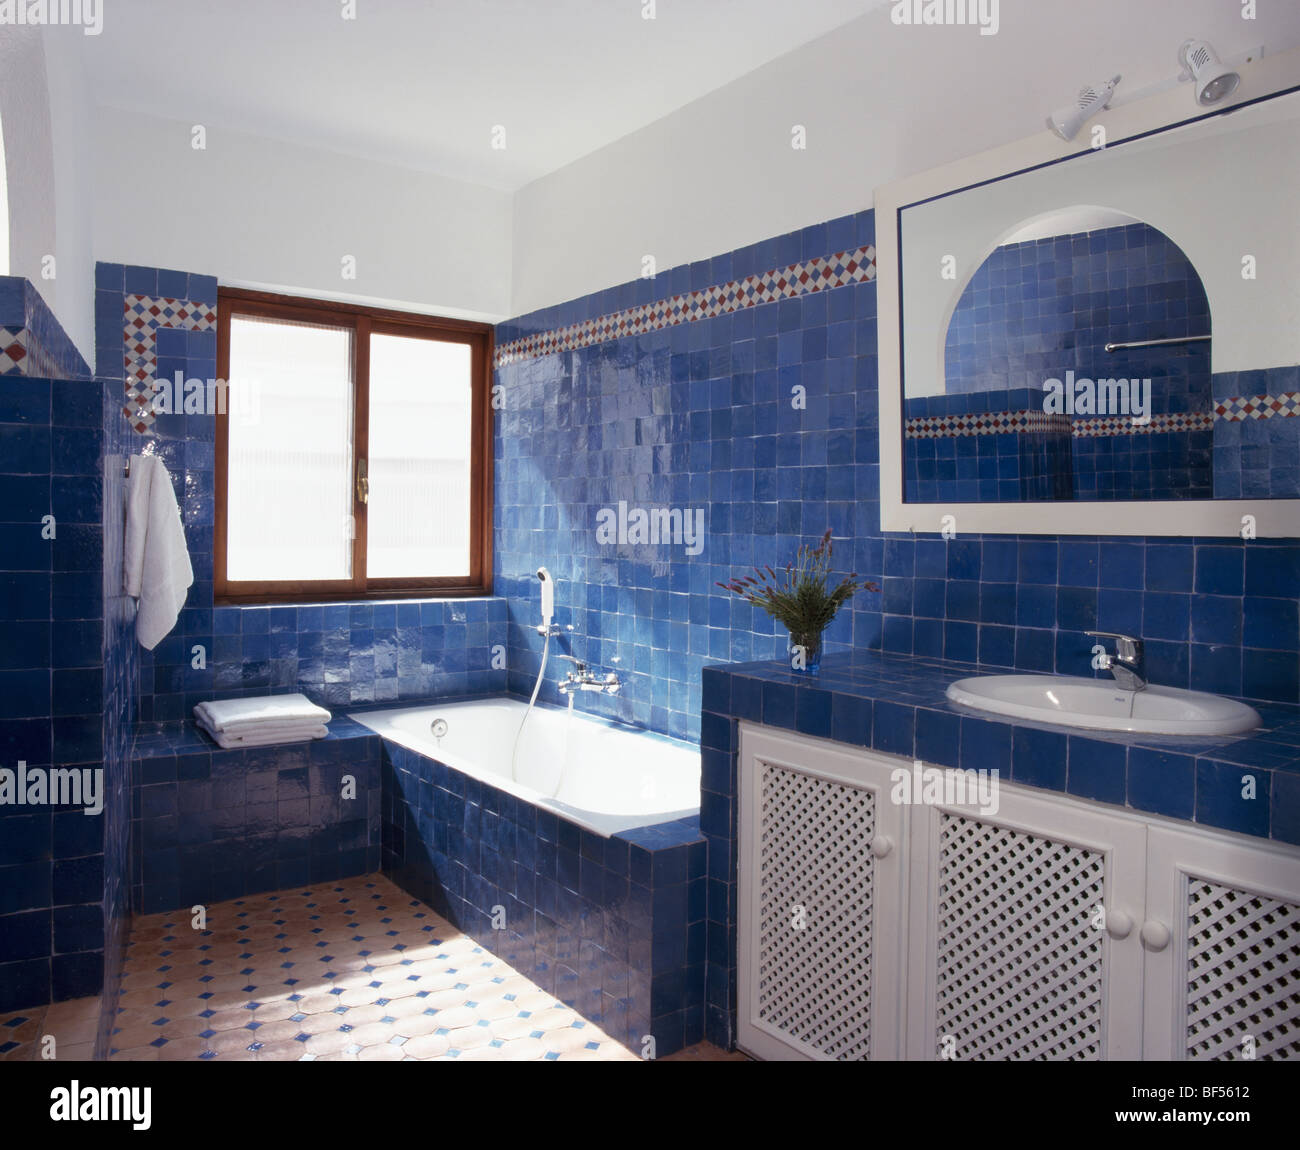 Bathroom In Spanish bright blue tiles on wall above bath in modern spanish bathroom